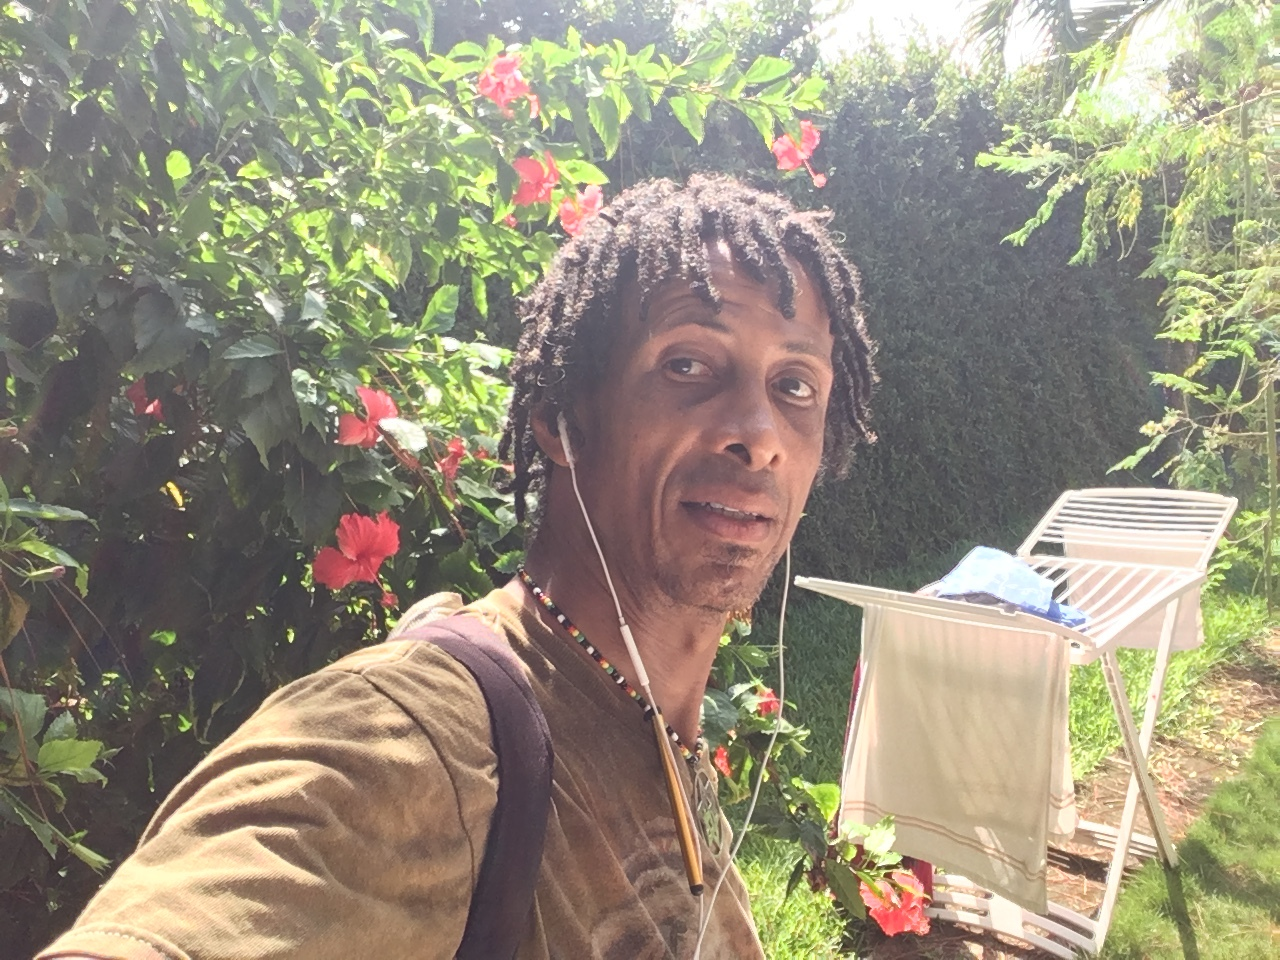 After selling his car and retiring, Assanouan G'bado moved from the US to Côte d'Ivoire to volunteer and build a sustainable Earthship home business.